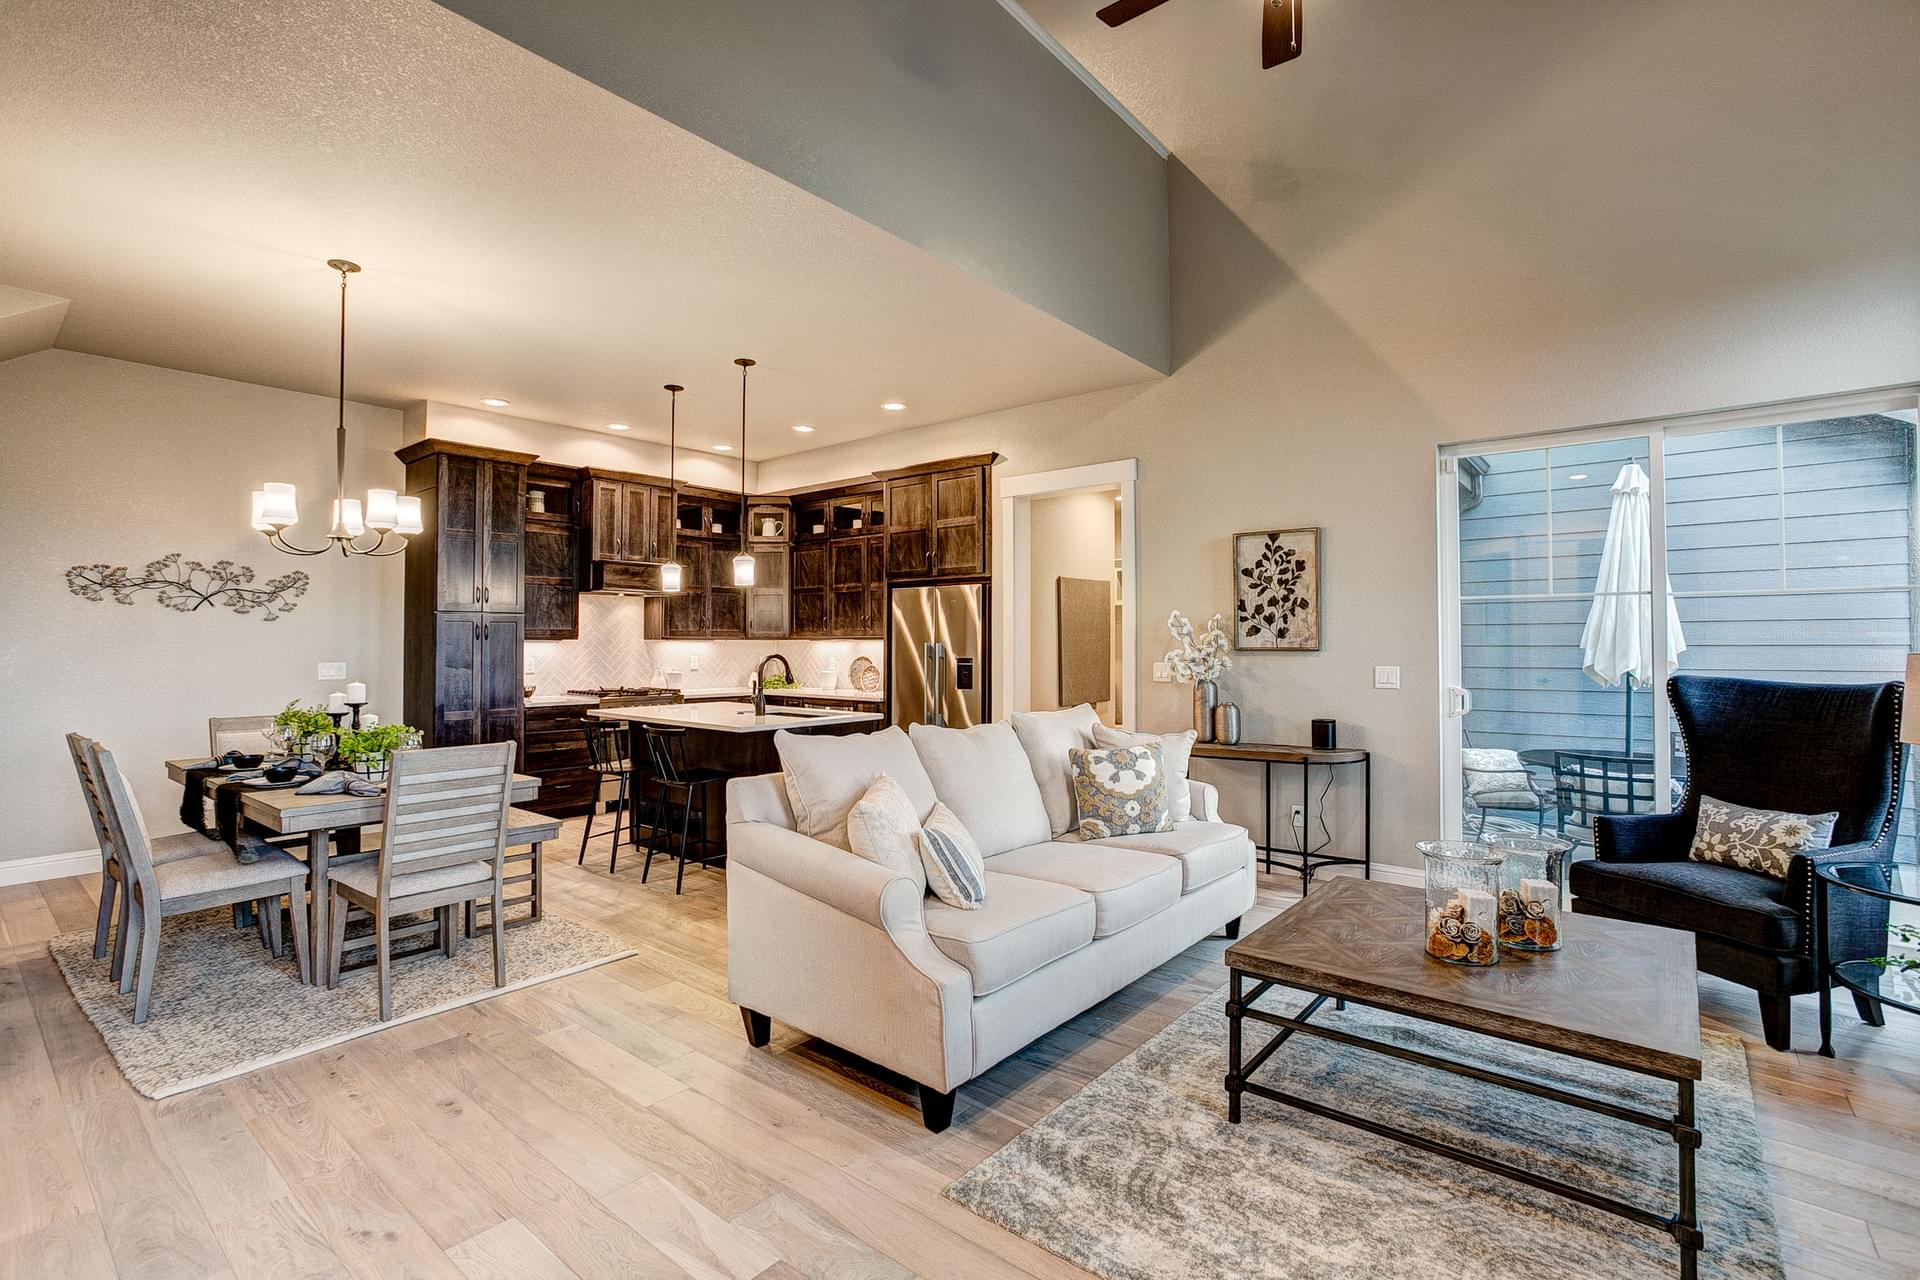 2,012sf New Home in Berthoud, CO